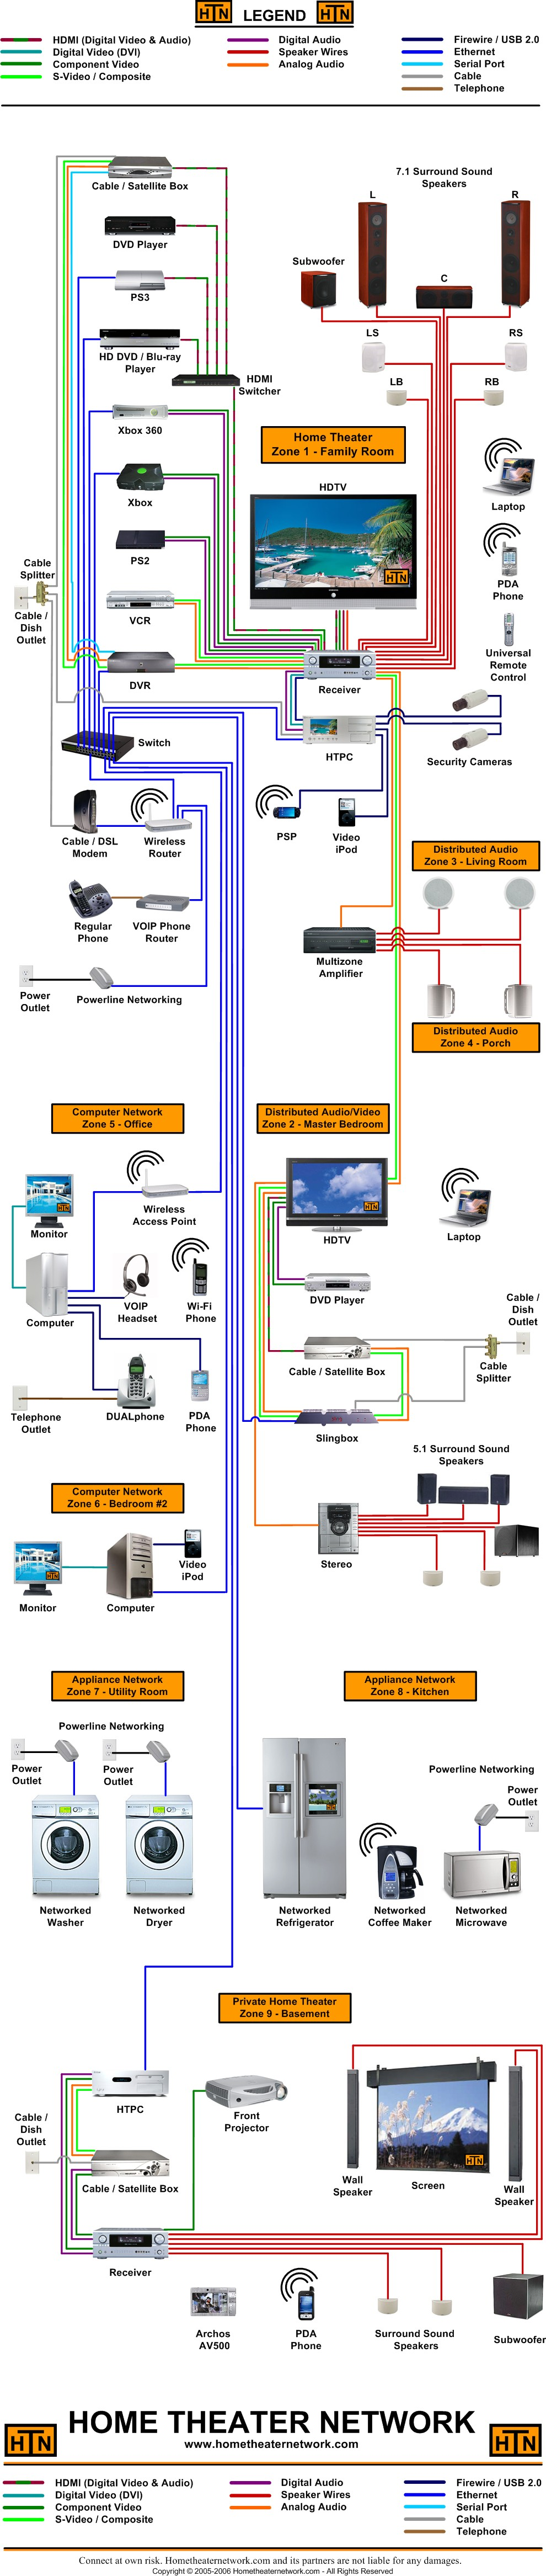 12 Wiring Diagram For Electric Chokes Wiring Diagram Wiringg Net12 Circuit Diagram For Electric Choke In 2020 Home Automation System Home Theater Home Automation